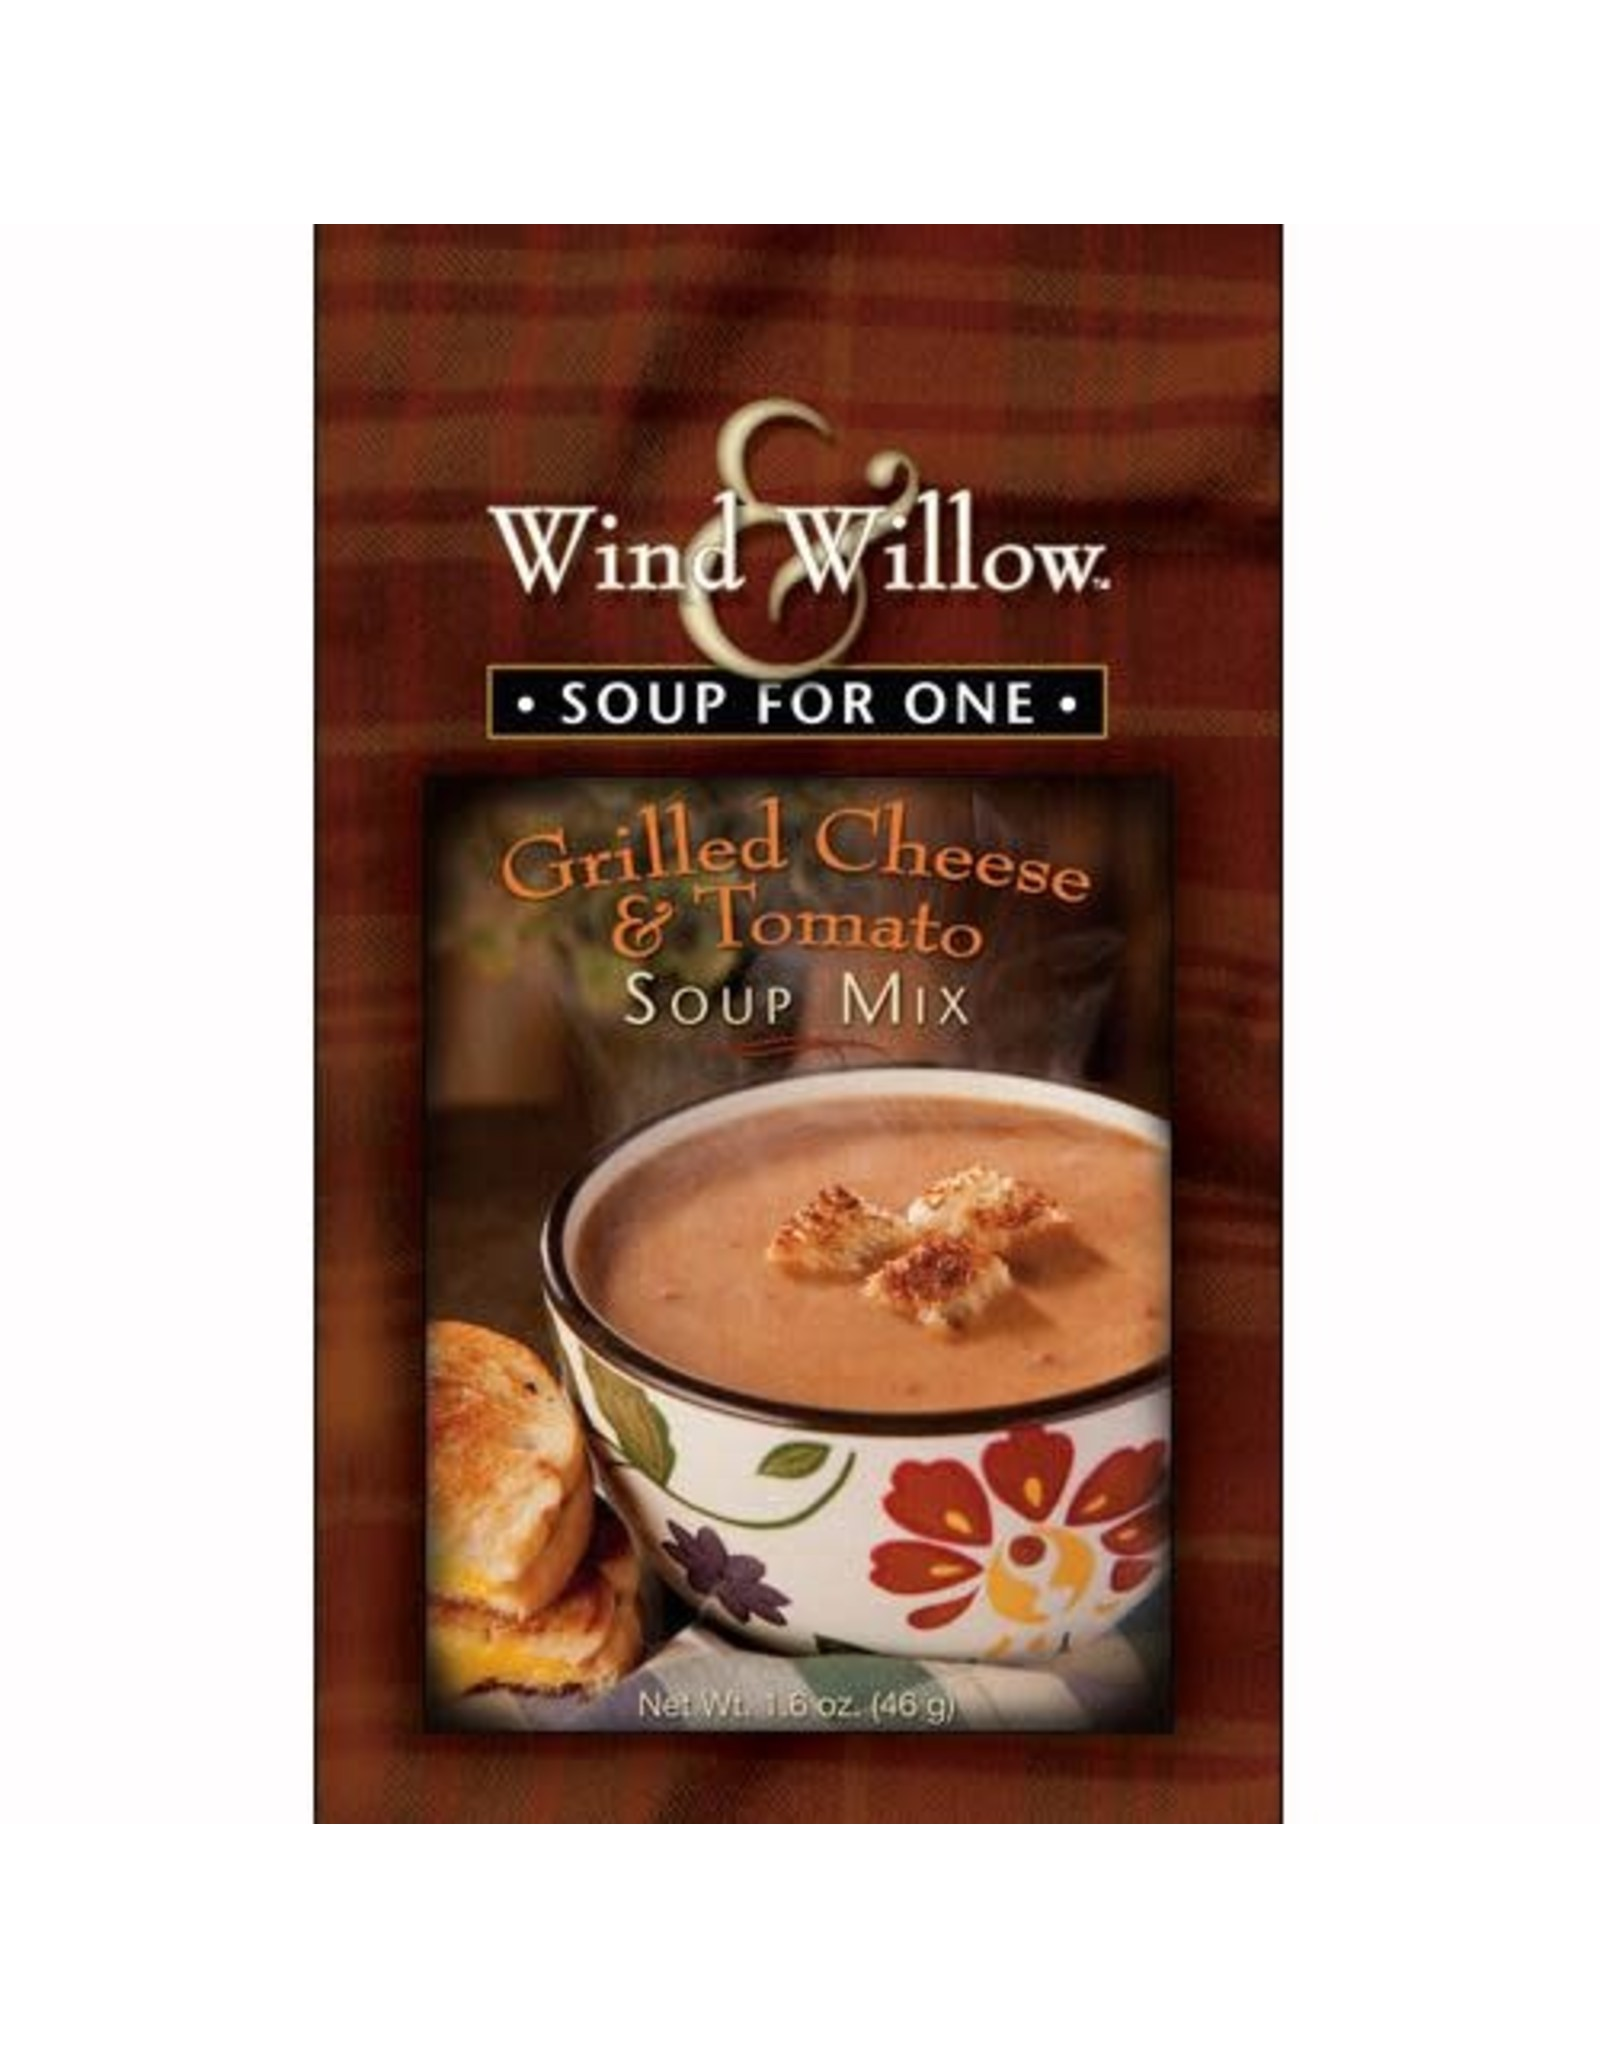 Wind & Willow Grilled Cheese & Tomato Soup Mix, Individual, 1.6 oz